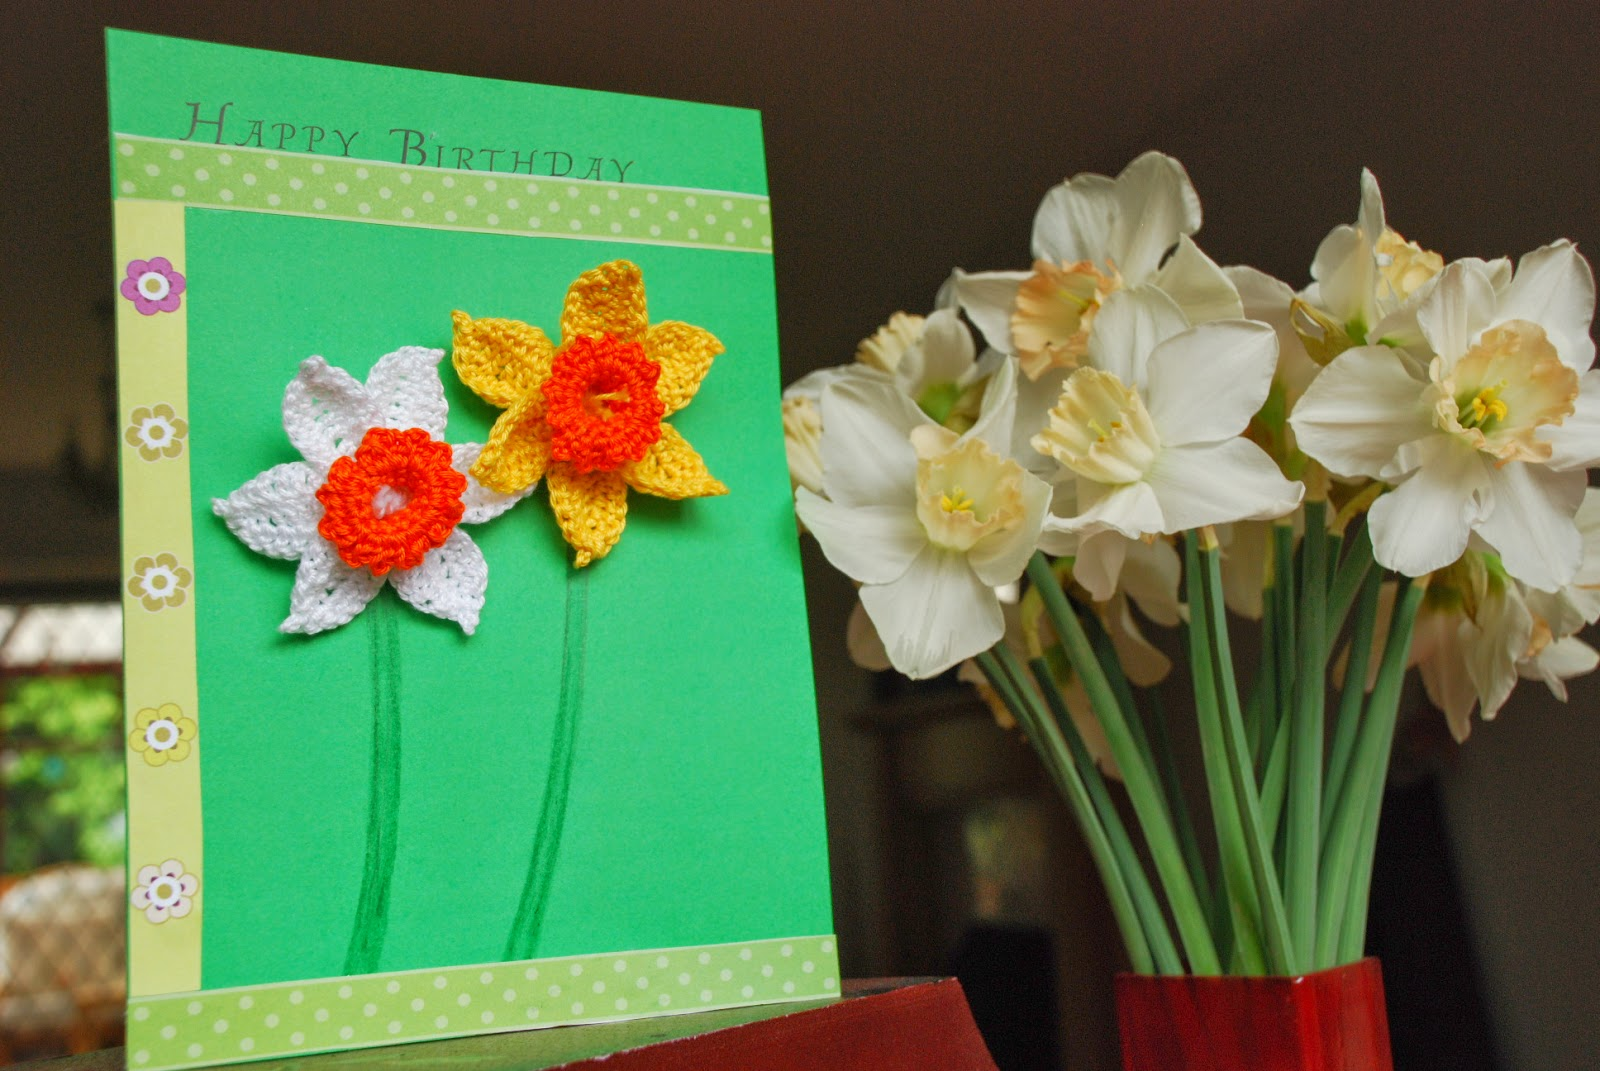 Crochet Daffodil pattern and tutorial: image of crochet daffodil brooches on a home made birthday card